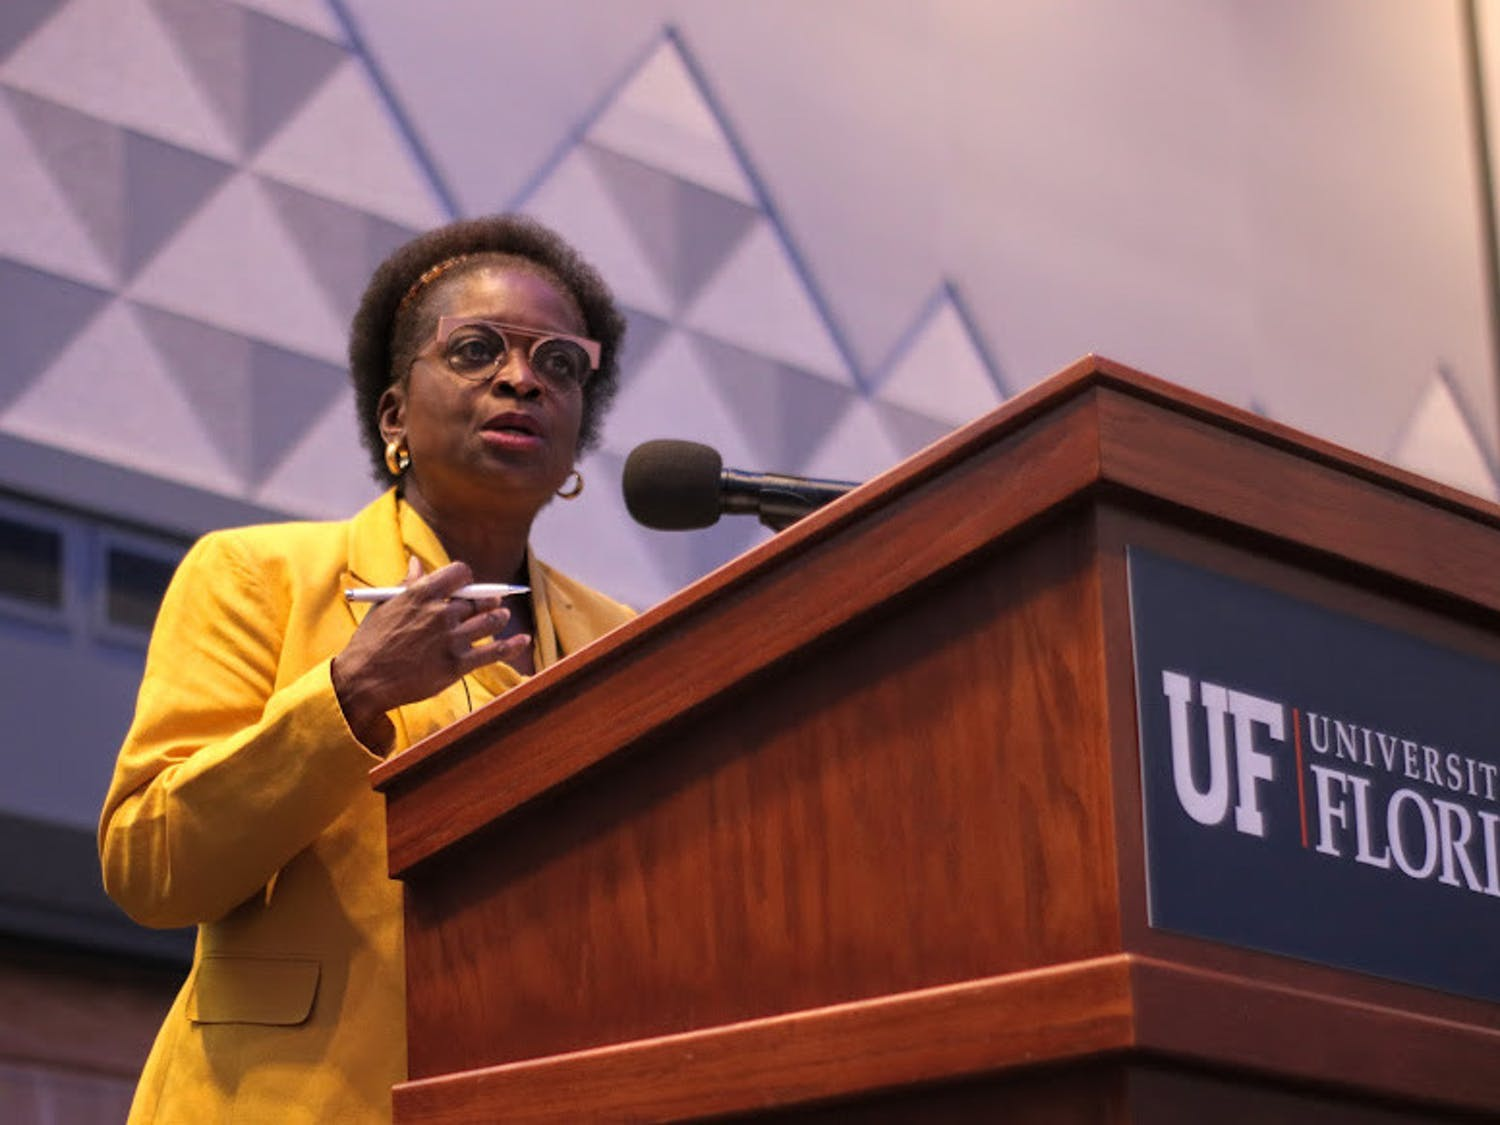 Former Federal Communications Commission Commissioner Mignon Clyburn gives a prepared speech at the event at the Reitz Union on Thursday, Sept. 9, 2021. She was introduced by Mark Jamison, the Public Utility Research Center director and Gerald Gunter professor, as well as David Reed, the Strategic Initiatives associate provost.